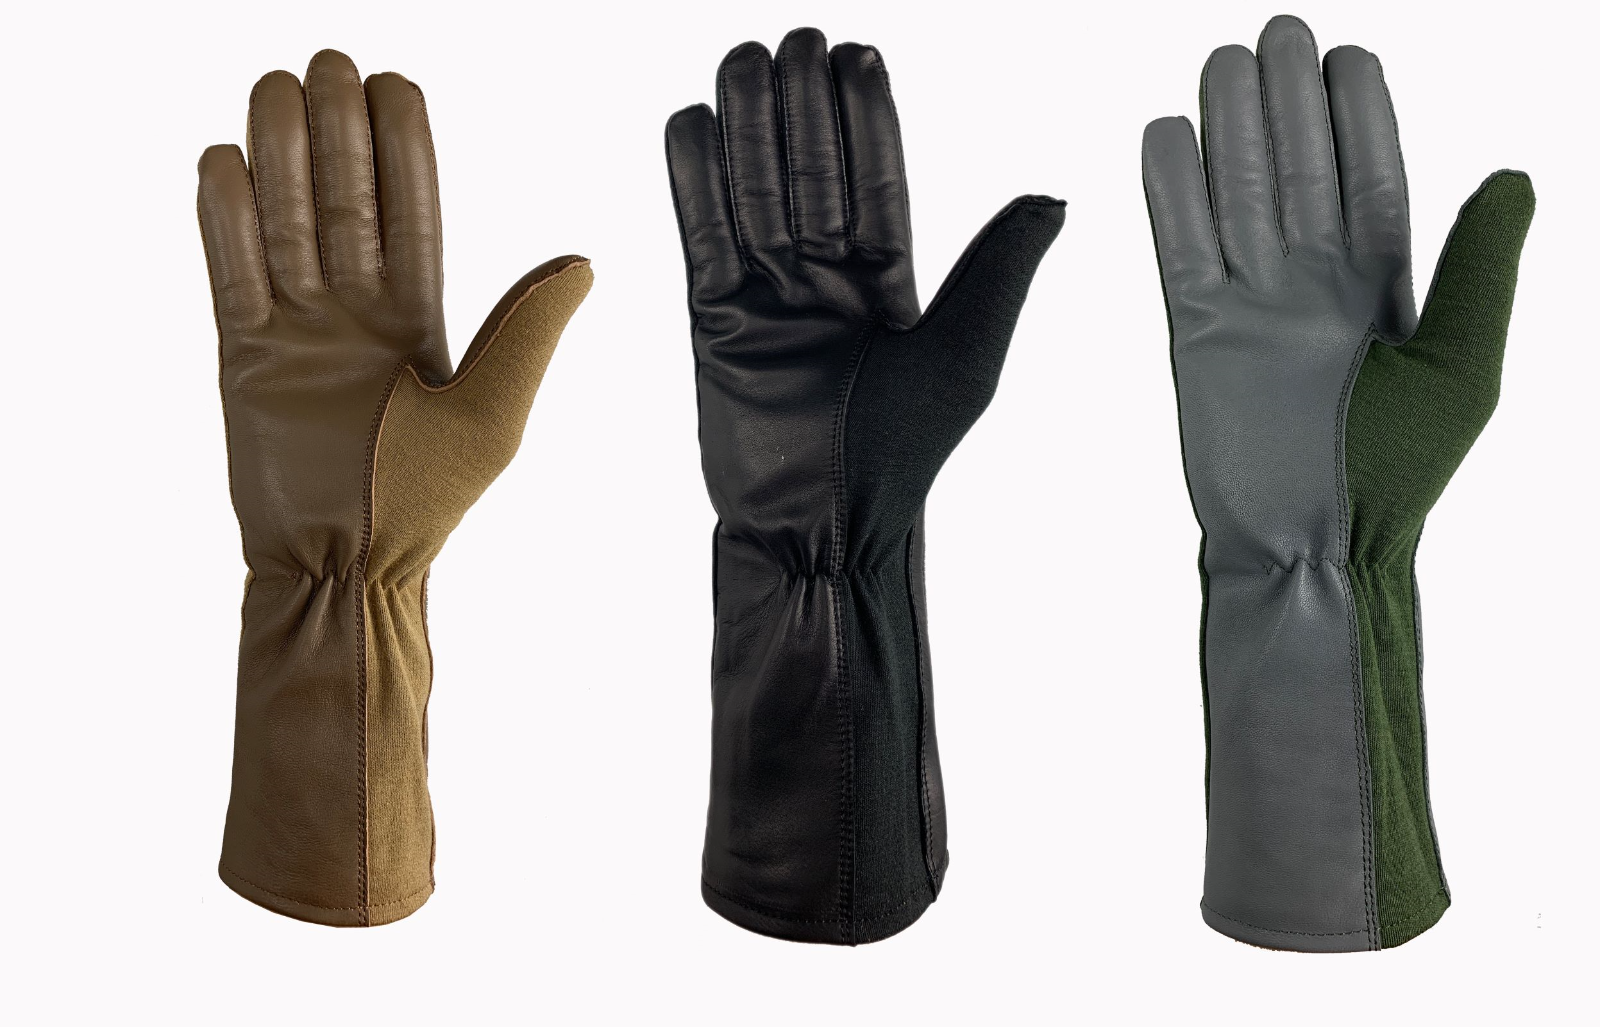 NOMEX LEATHER TACTICAL PILOT FLYERS FIRE HEAT RESISTANCE GLOVES TOUCH SCREEN